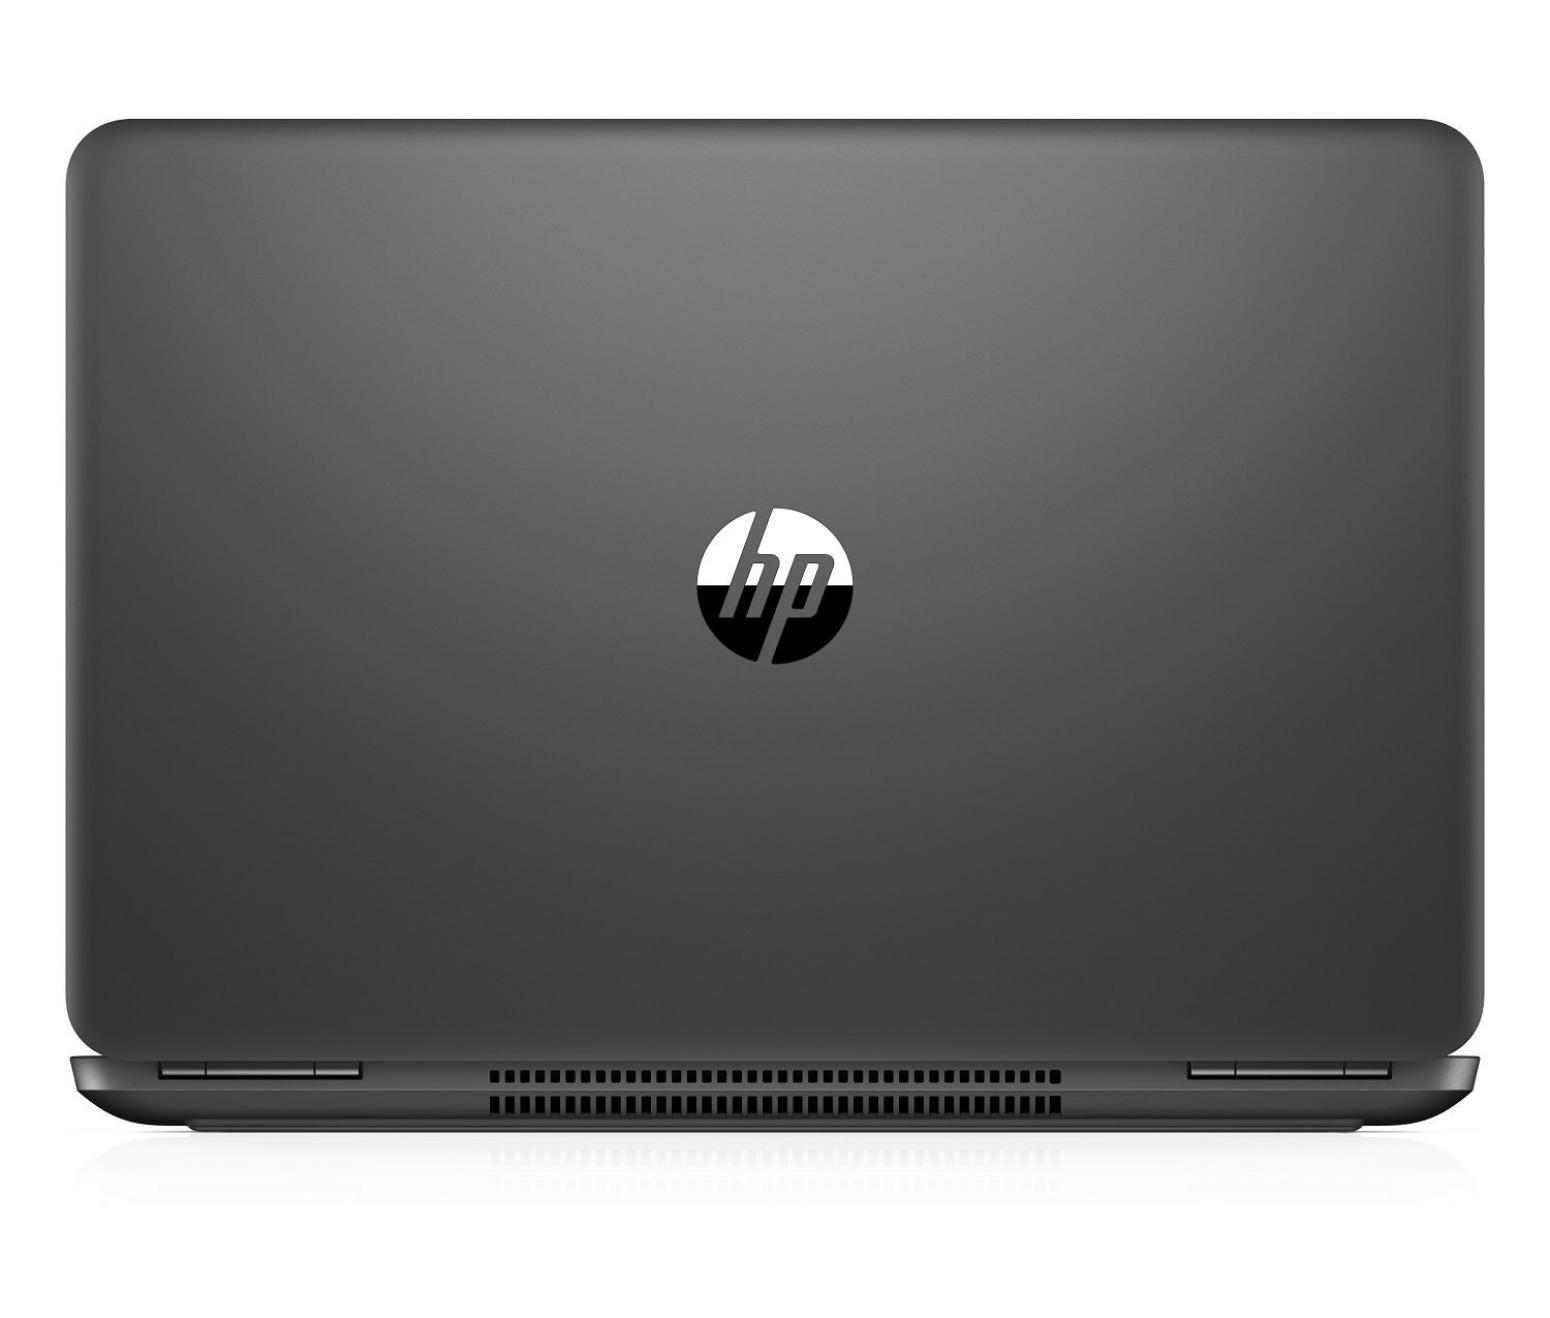 hp pavilion 15 bc403nf noir ssd les meilleurs prix. Black Bedroom Furniture Sets. Home Design Ideas